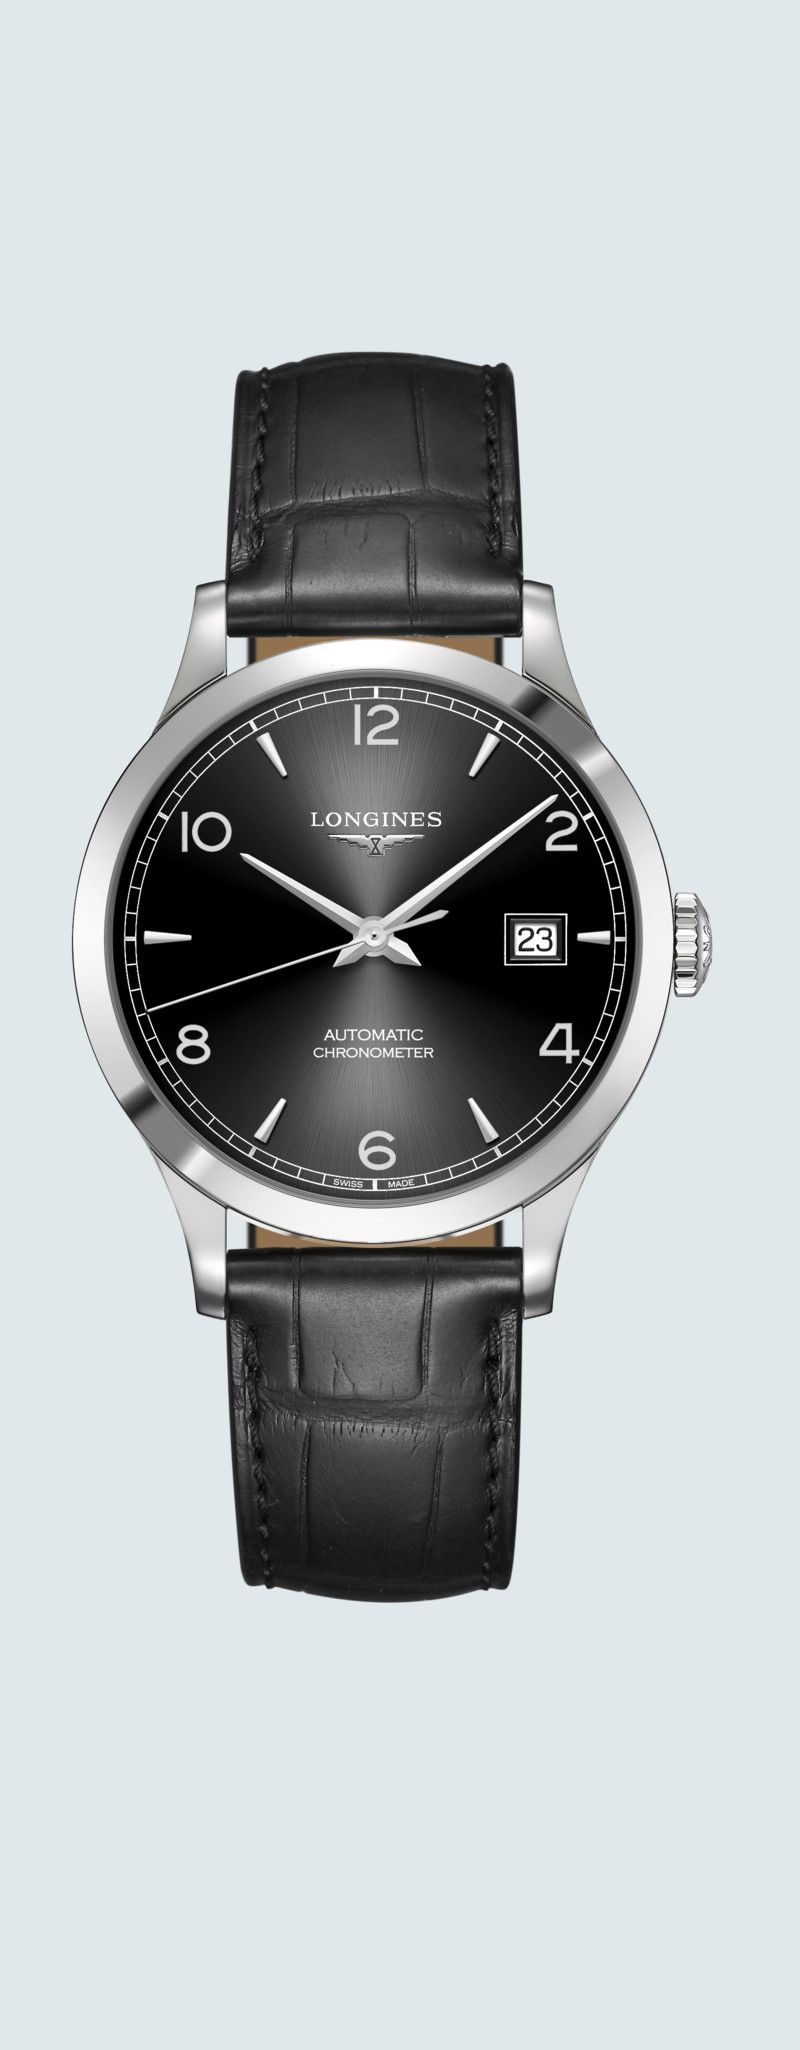 38.50 mm Stainless steel case with Sunray black dial and Alligator strap Black strap - case zoom vi